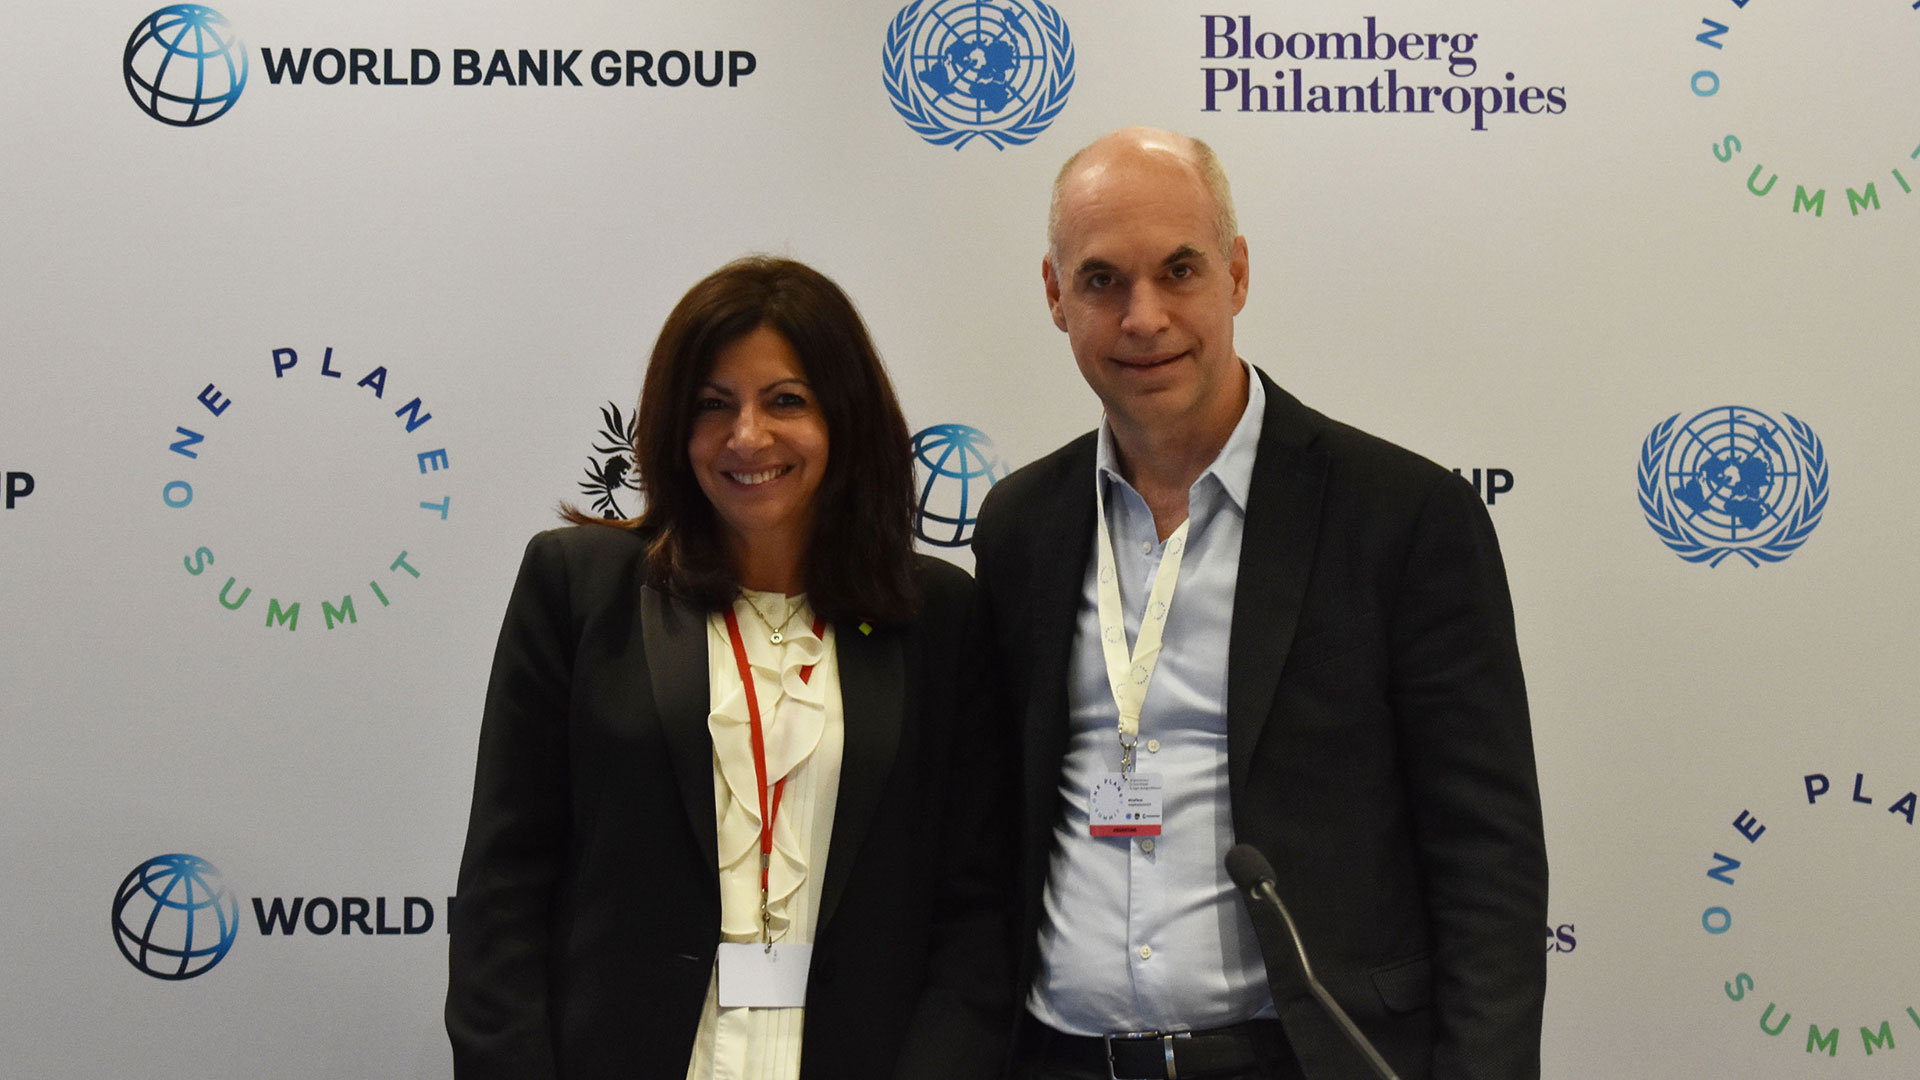 Anne Hidalgo, mayor of Paris, and Horacio Rodríguez Larreta, mayor of Buenos Aires, will co-chair the inaugural U20.  (Source:  Bloomberg and C40 Cities )